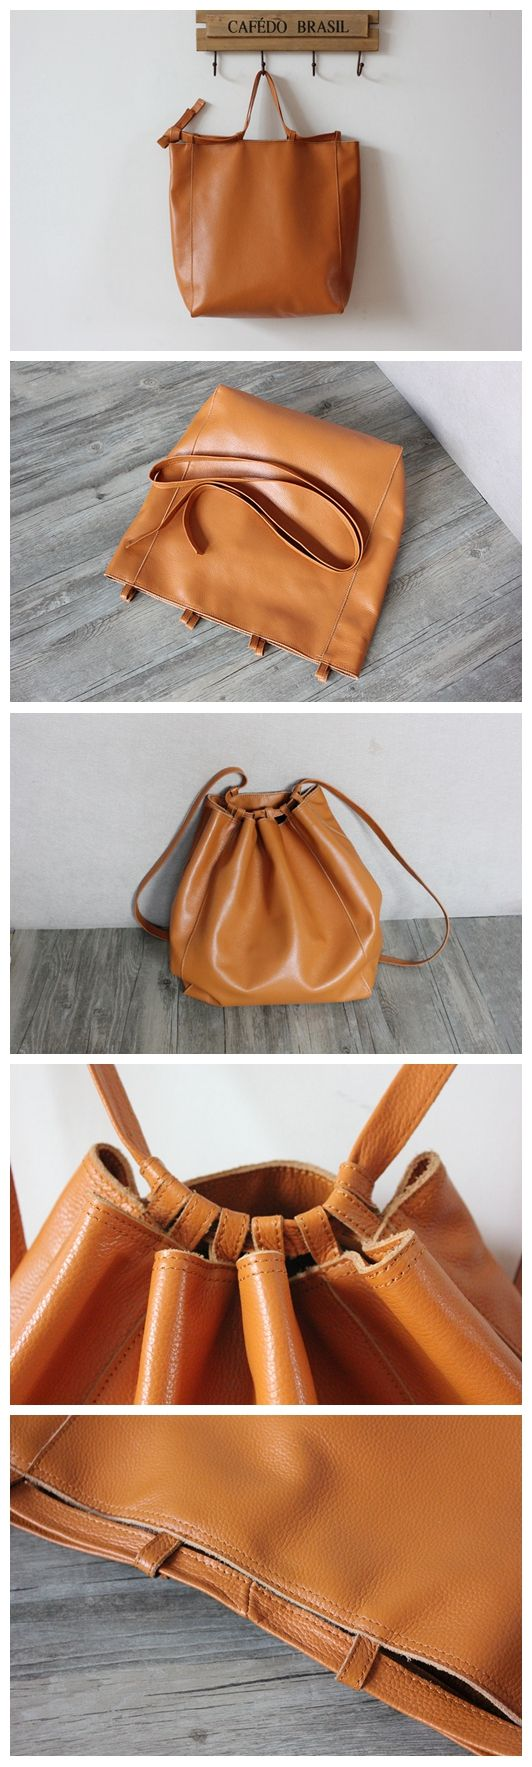 Handmade Leather Shoulder Bag For Women https://twitter.com/gaefaefagaea4/status/895099981215932416